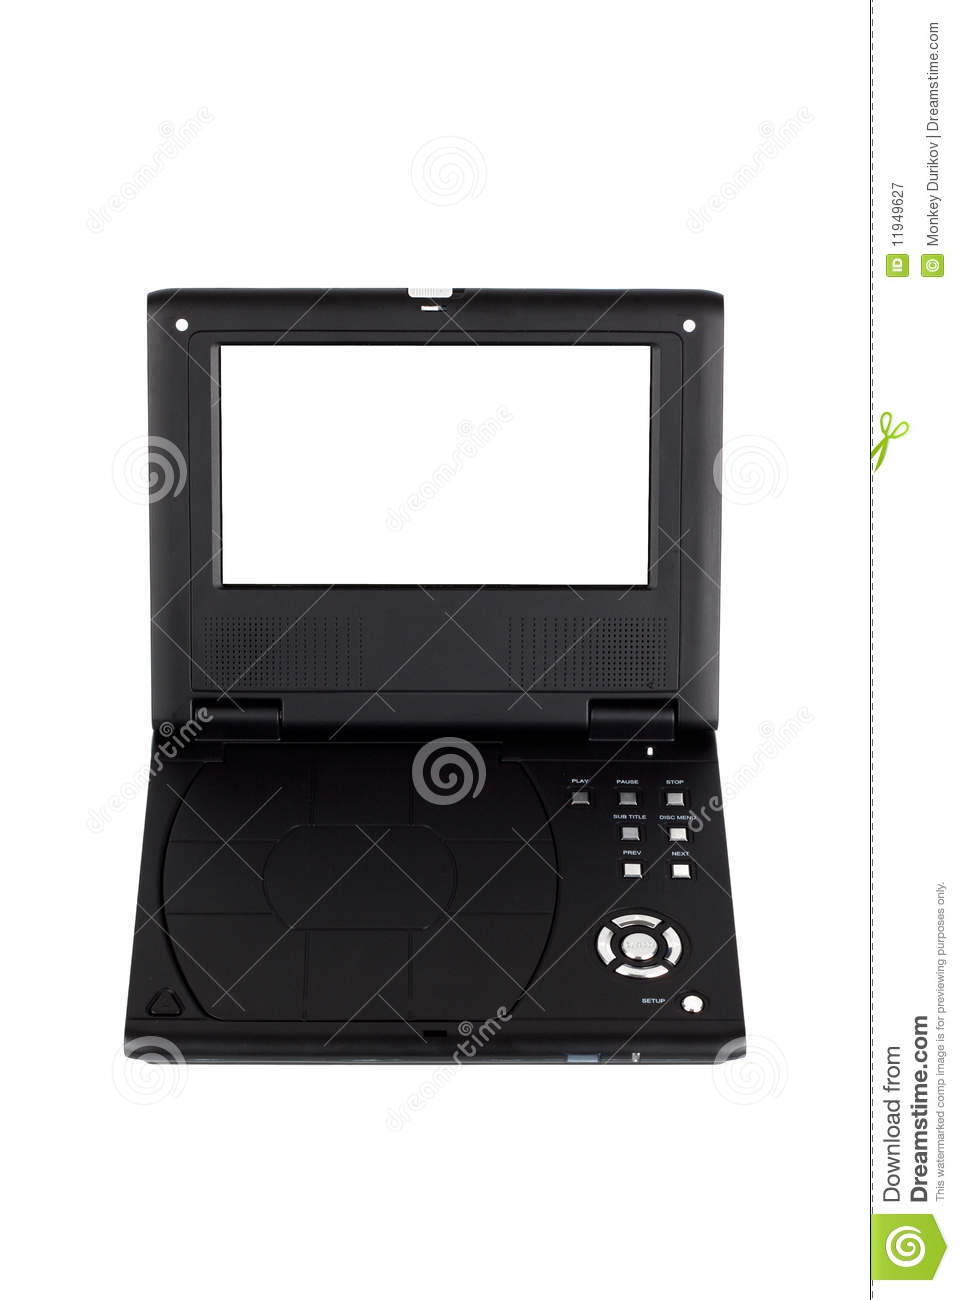 Royalty free stock photography portable dvd player image for Free portable